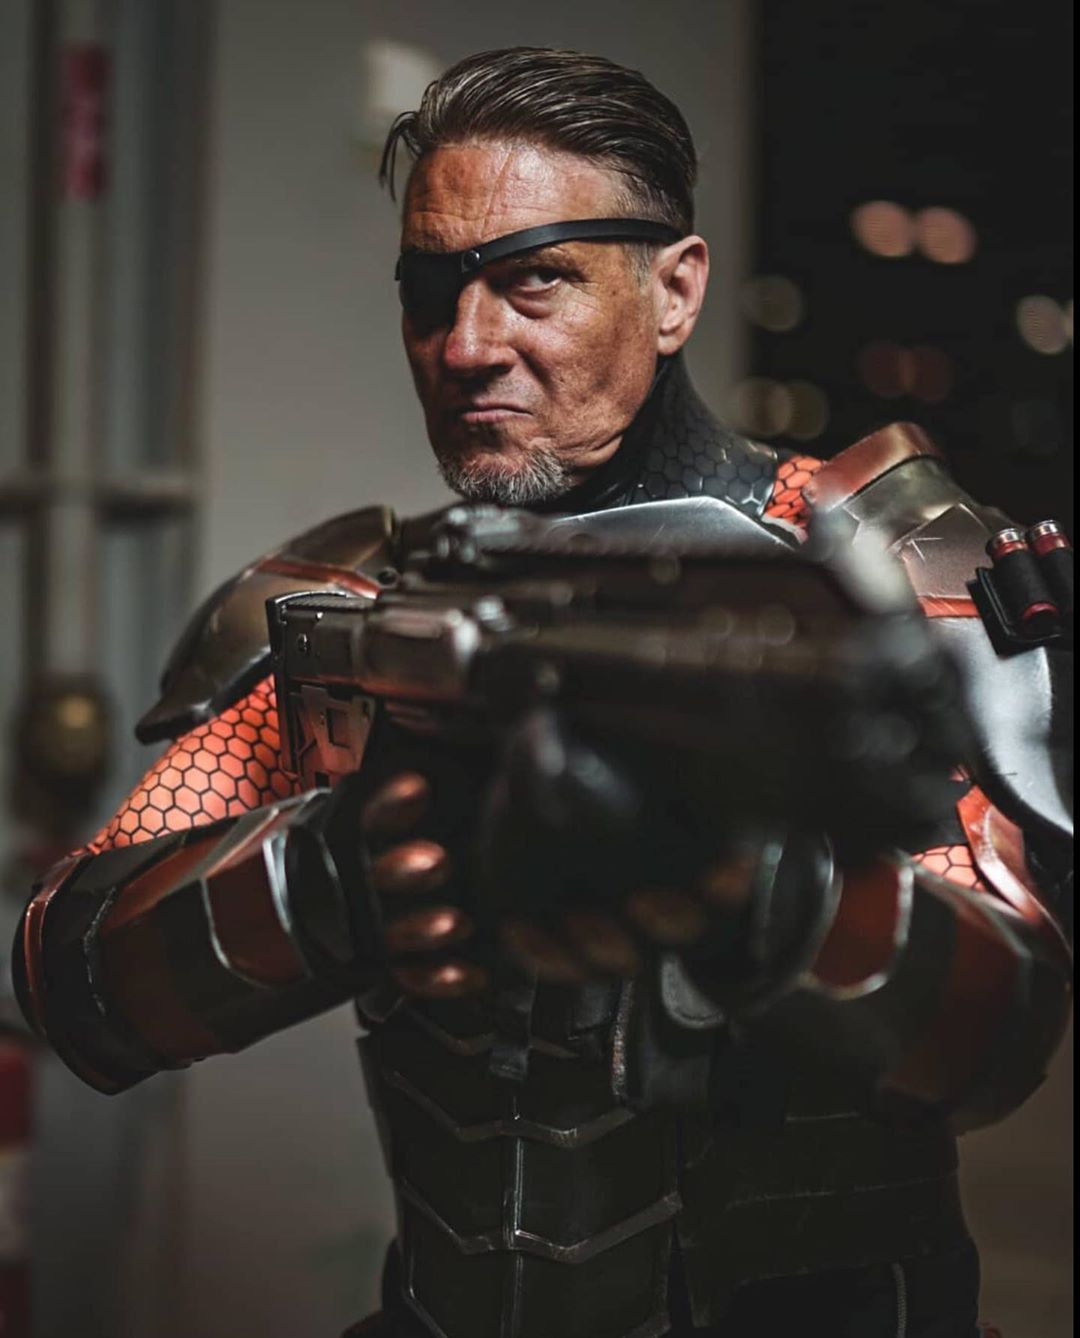 """Mark RoBards on Instagram: """"Who's the only one who can keep Meta's like them in line? Photo by the amazing @catsmeowtampa  #deathstrokecosplay #deathstroke #batman…"""""""